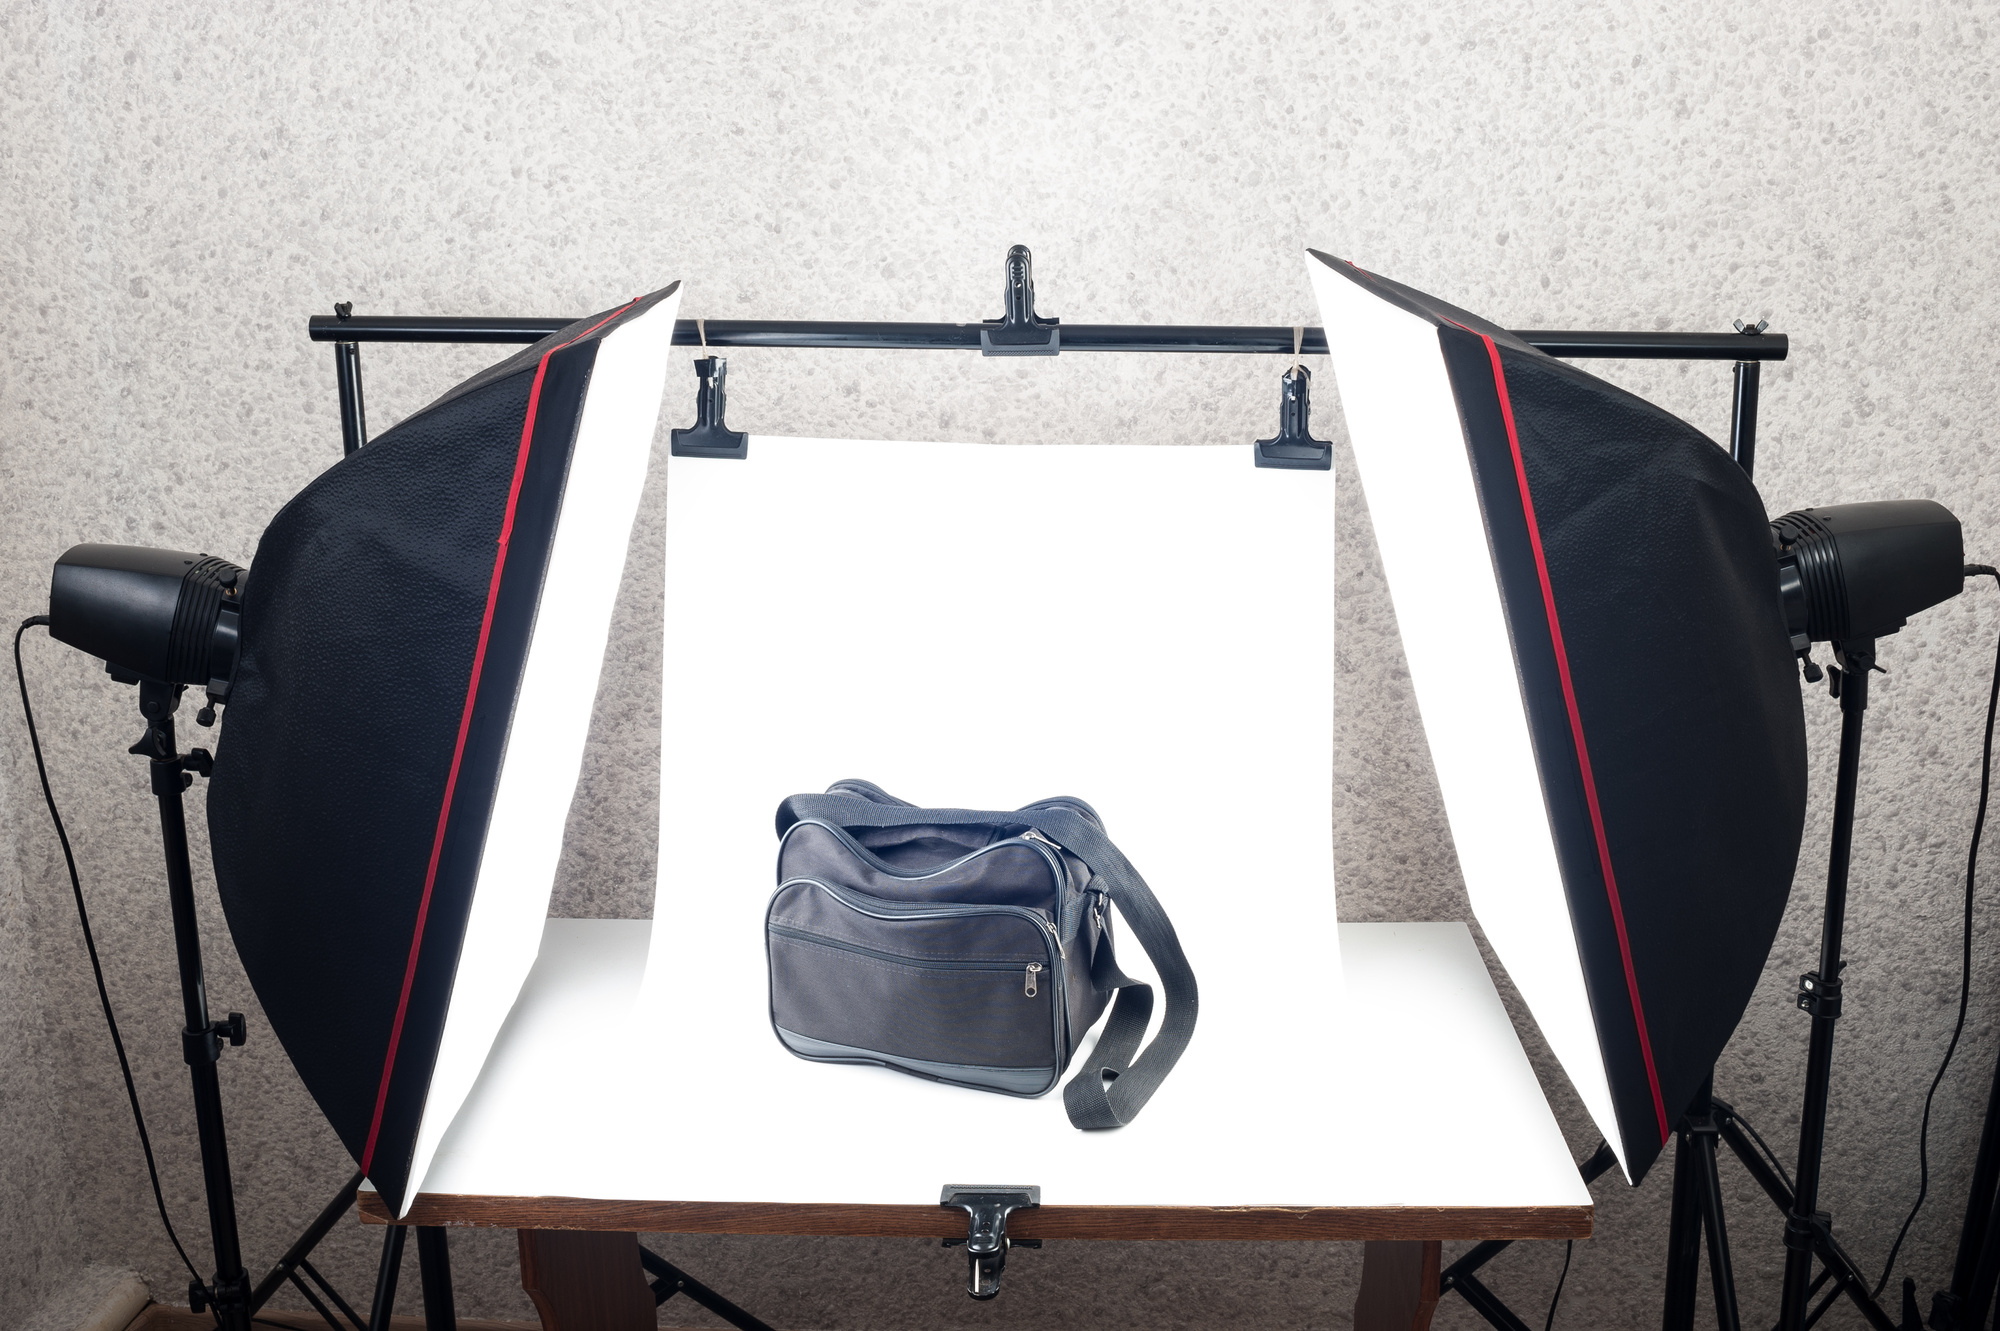 The Top 3 Benefits of Good Product Photography